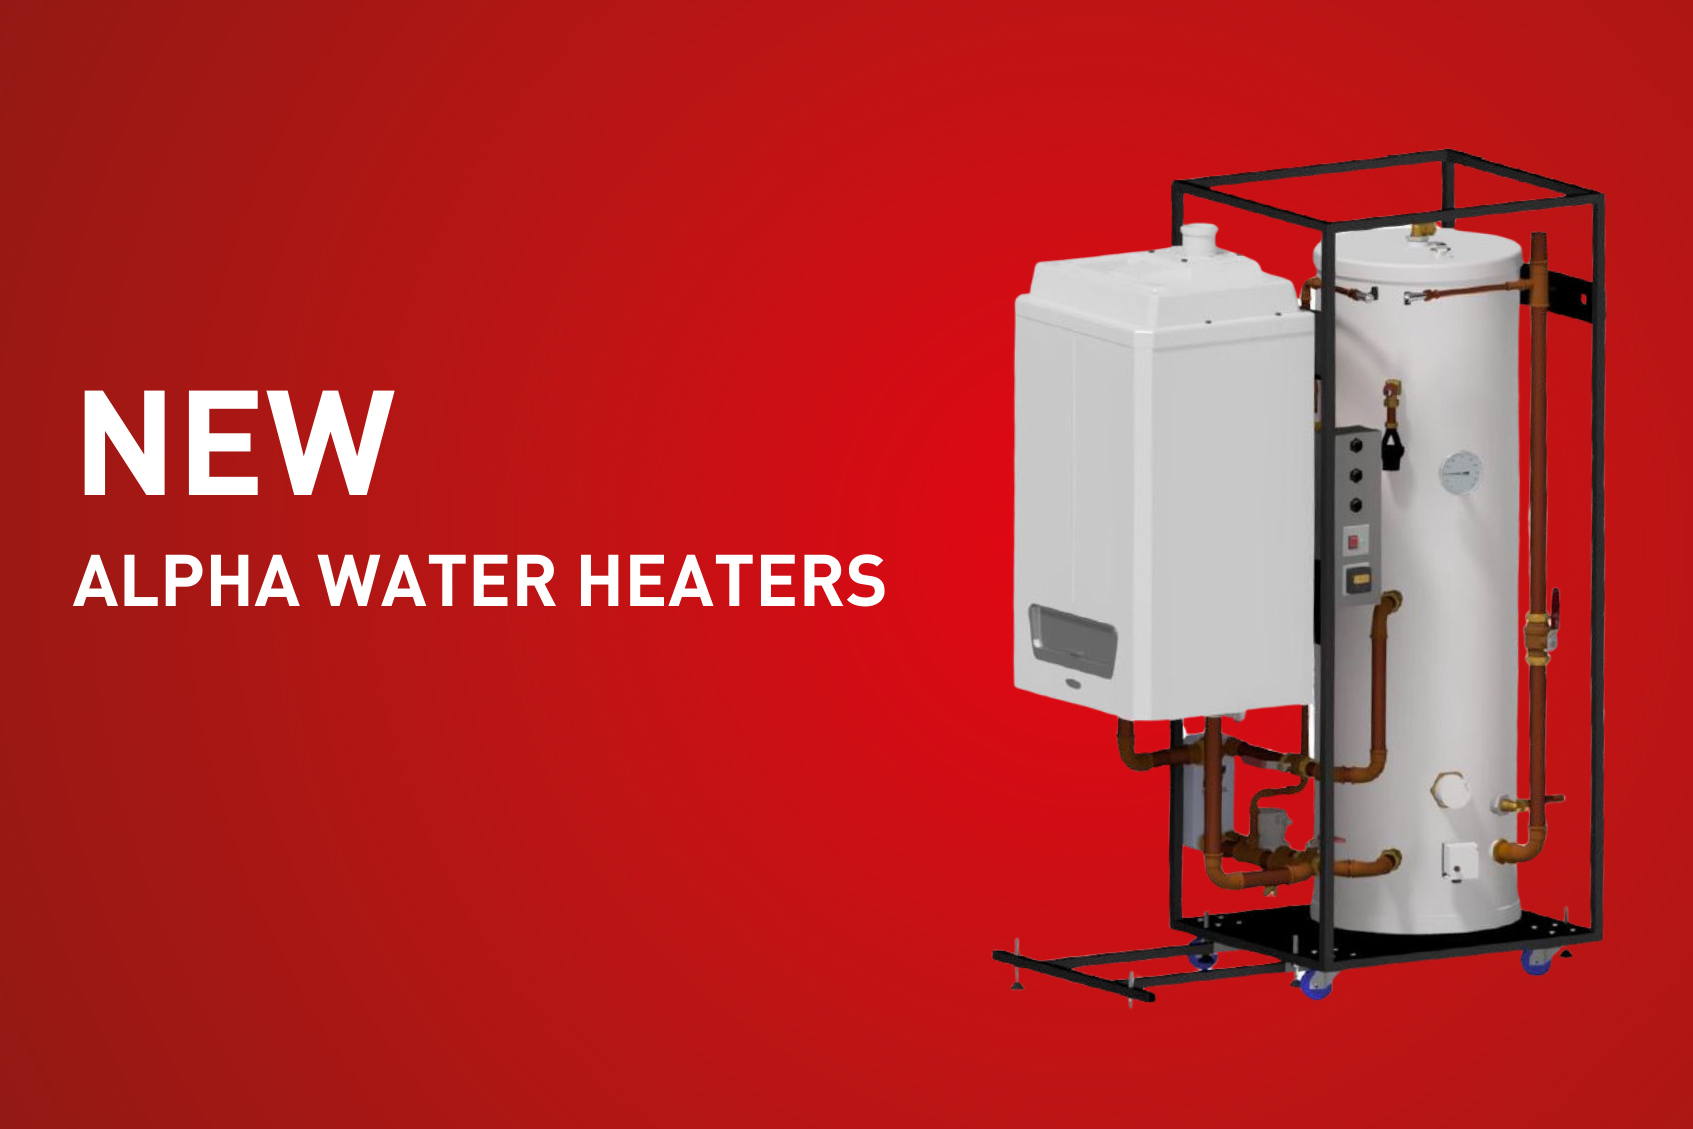 New product: Alpha water heaters